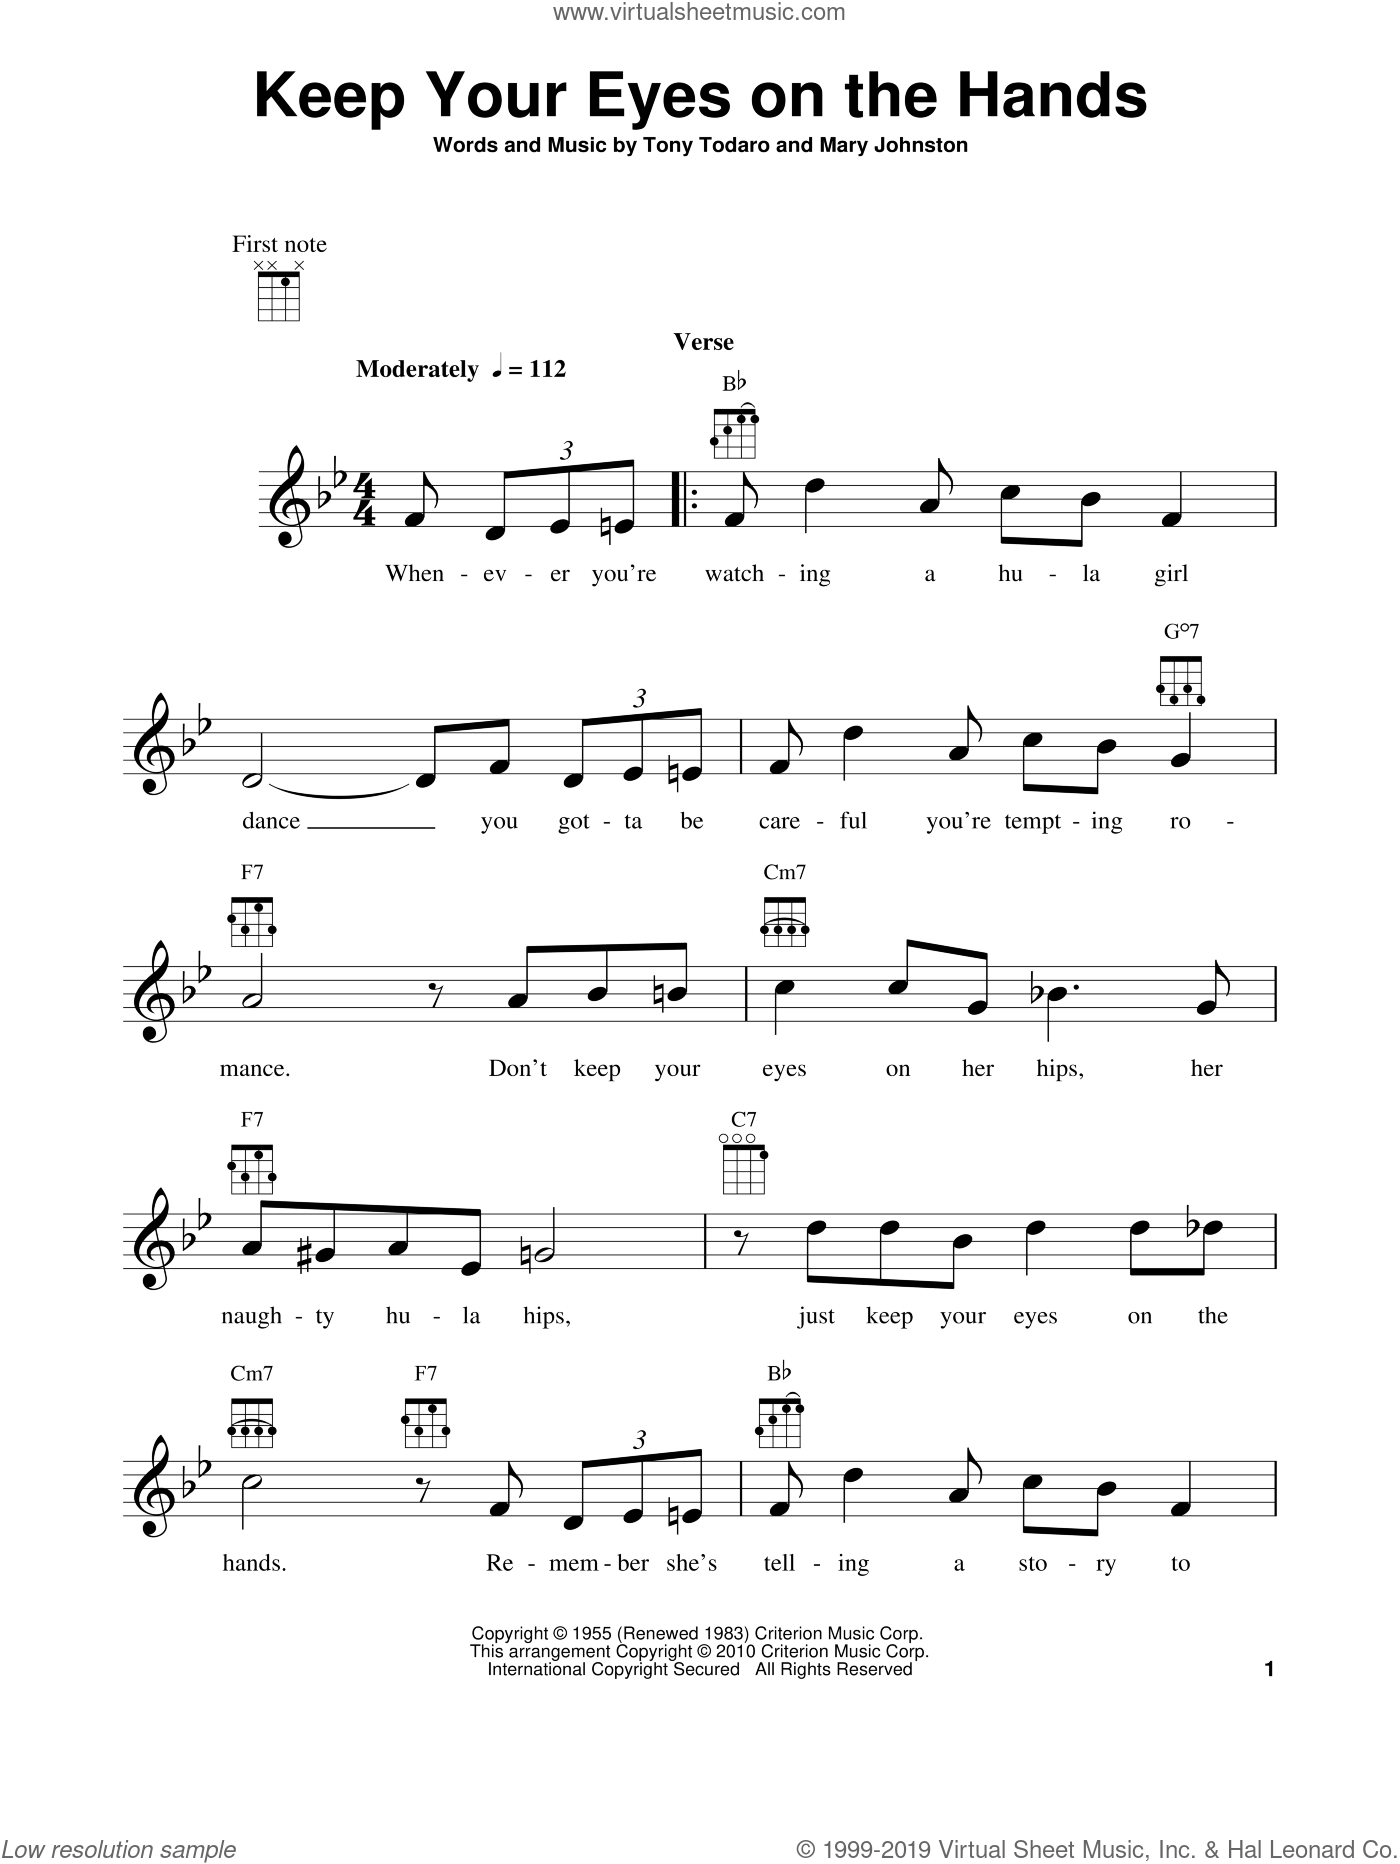 Keep Your Eyes On The Hands sheet music for ukulele by Tony Todaro